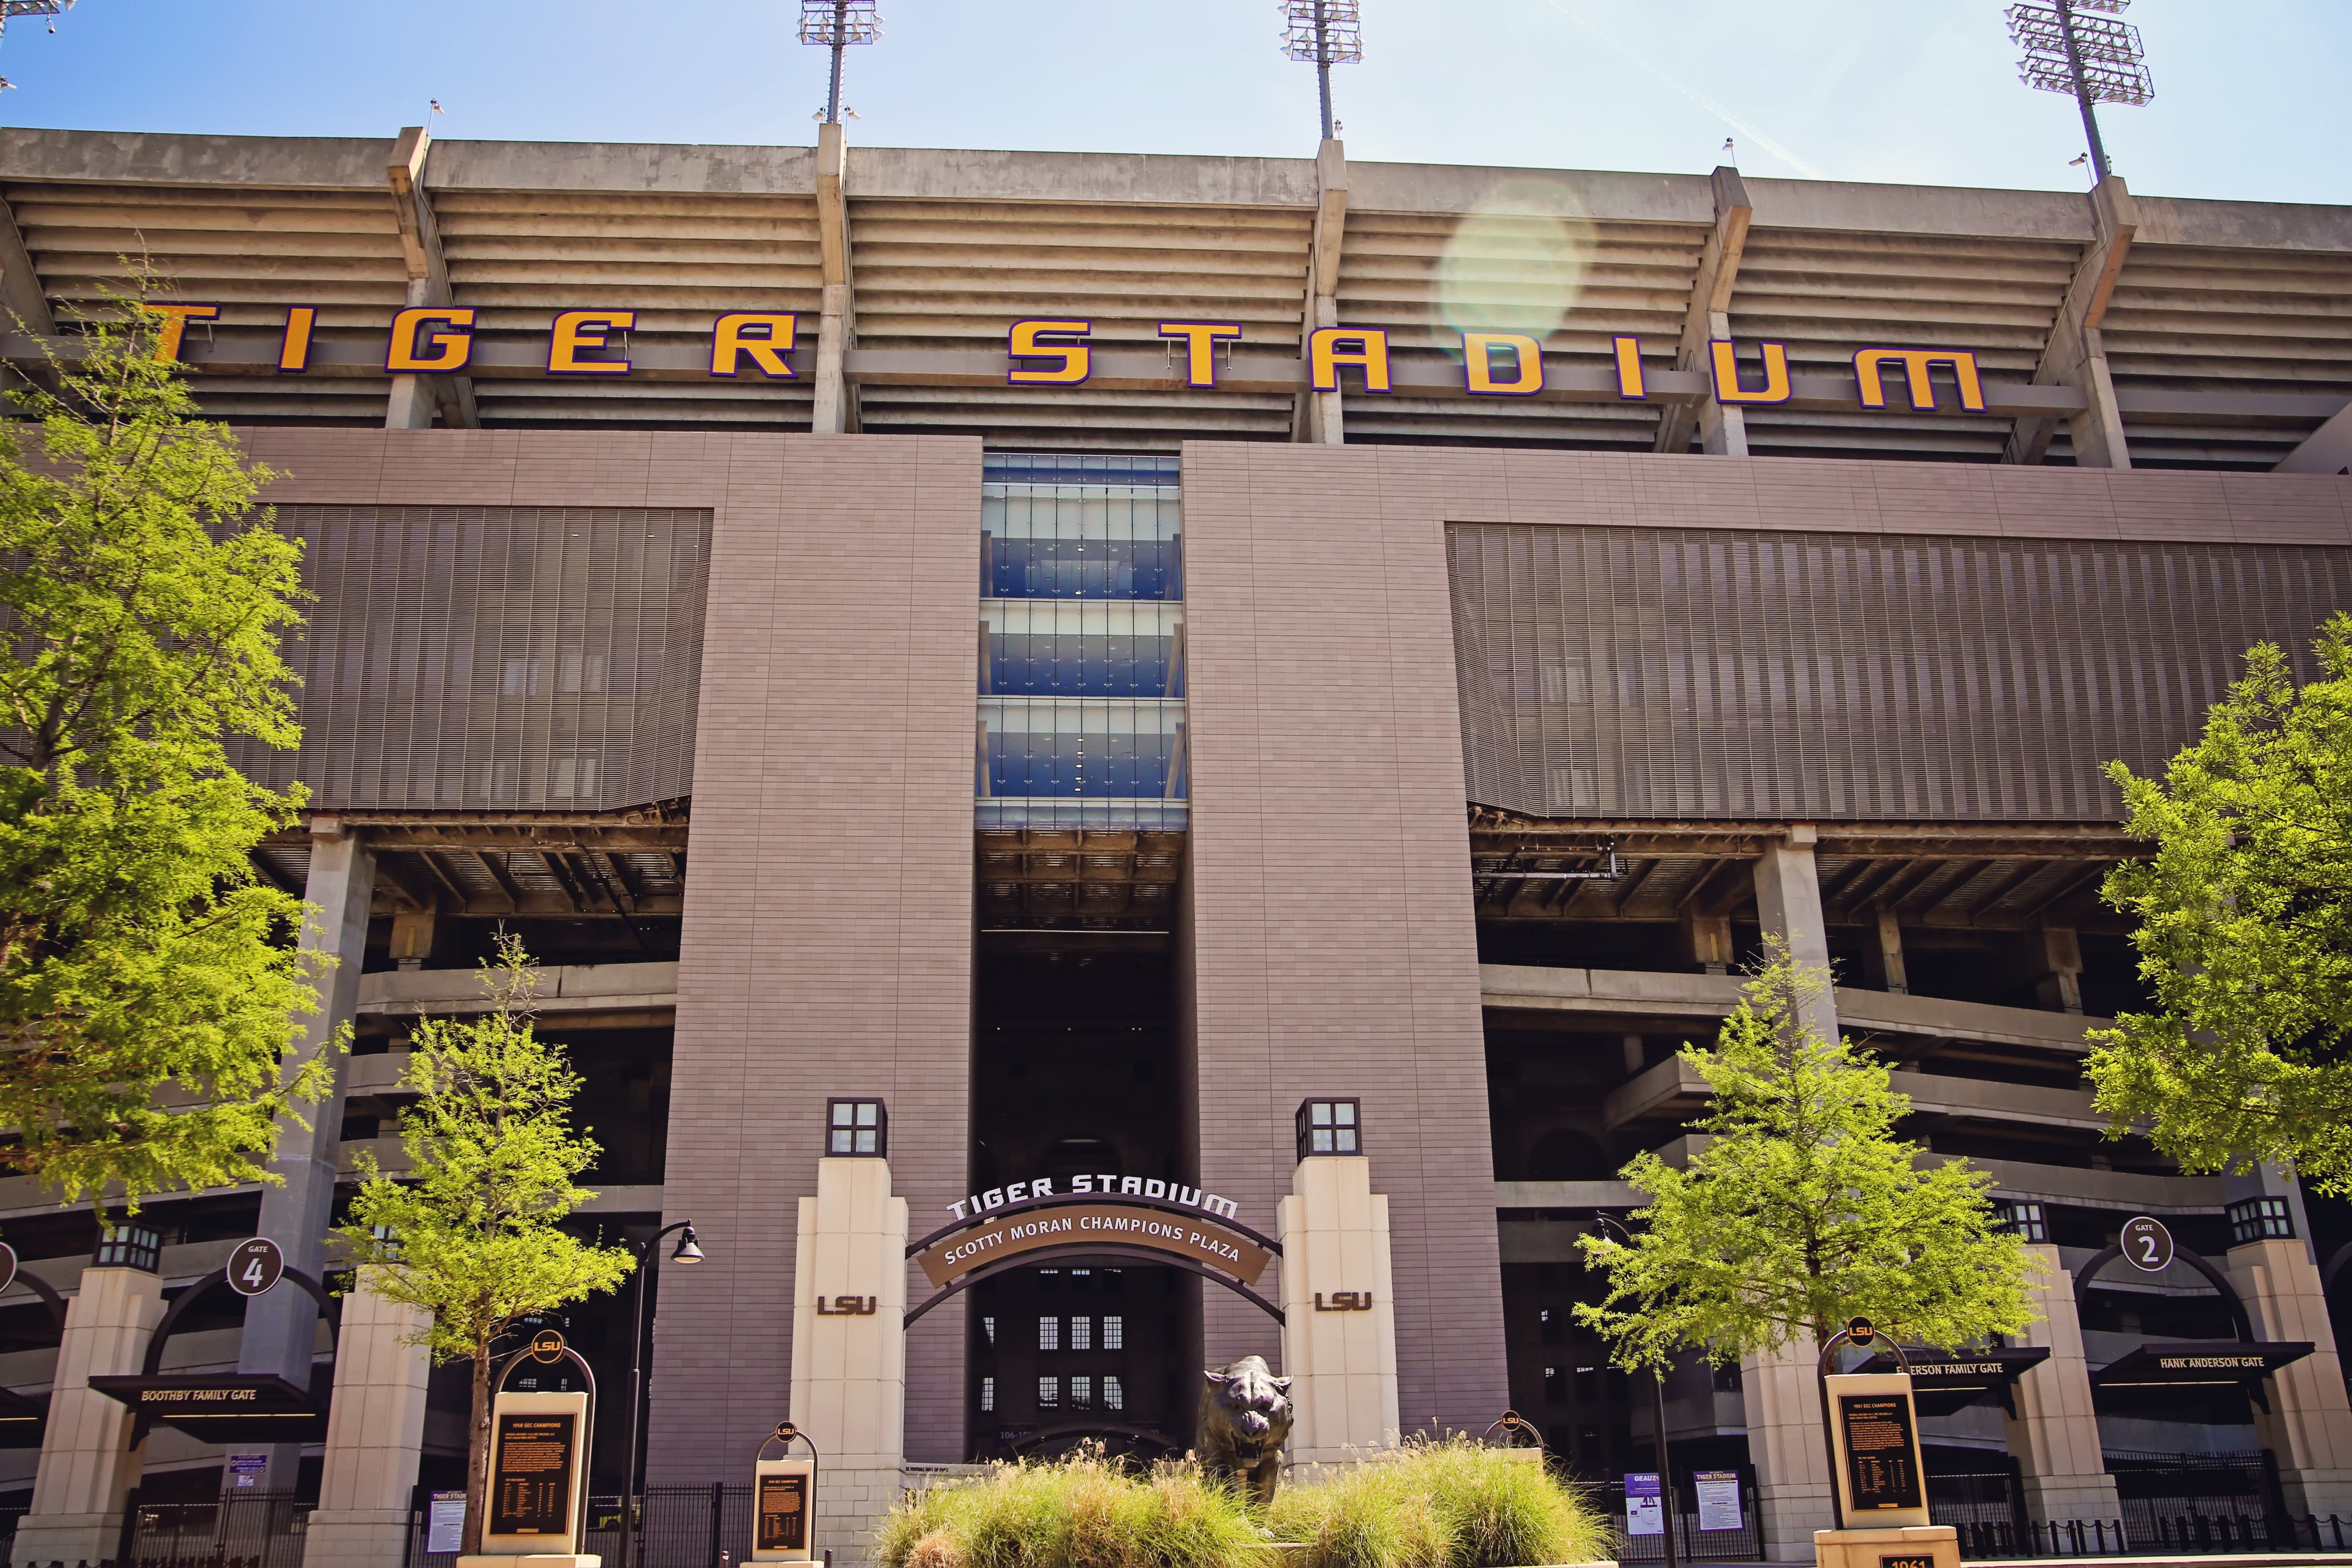 LSU TIGER STADIUM Image